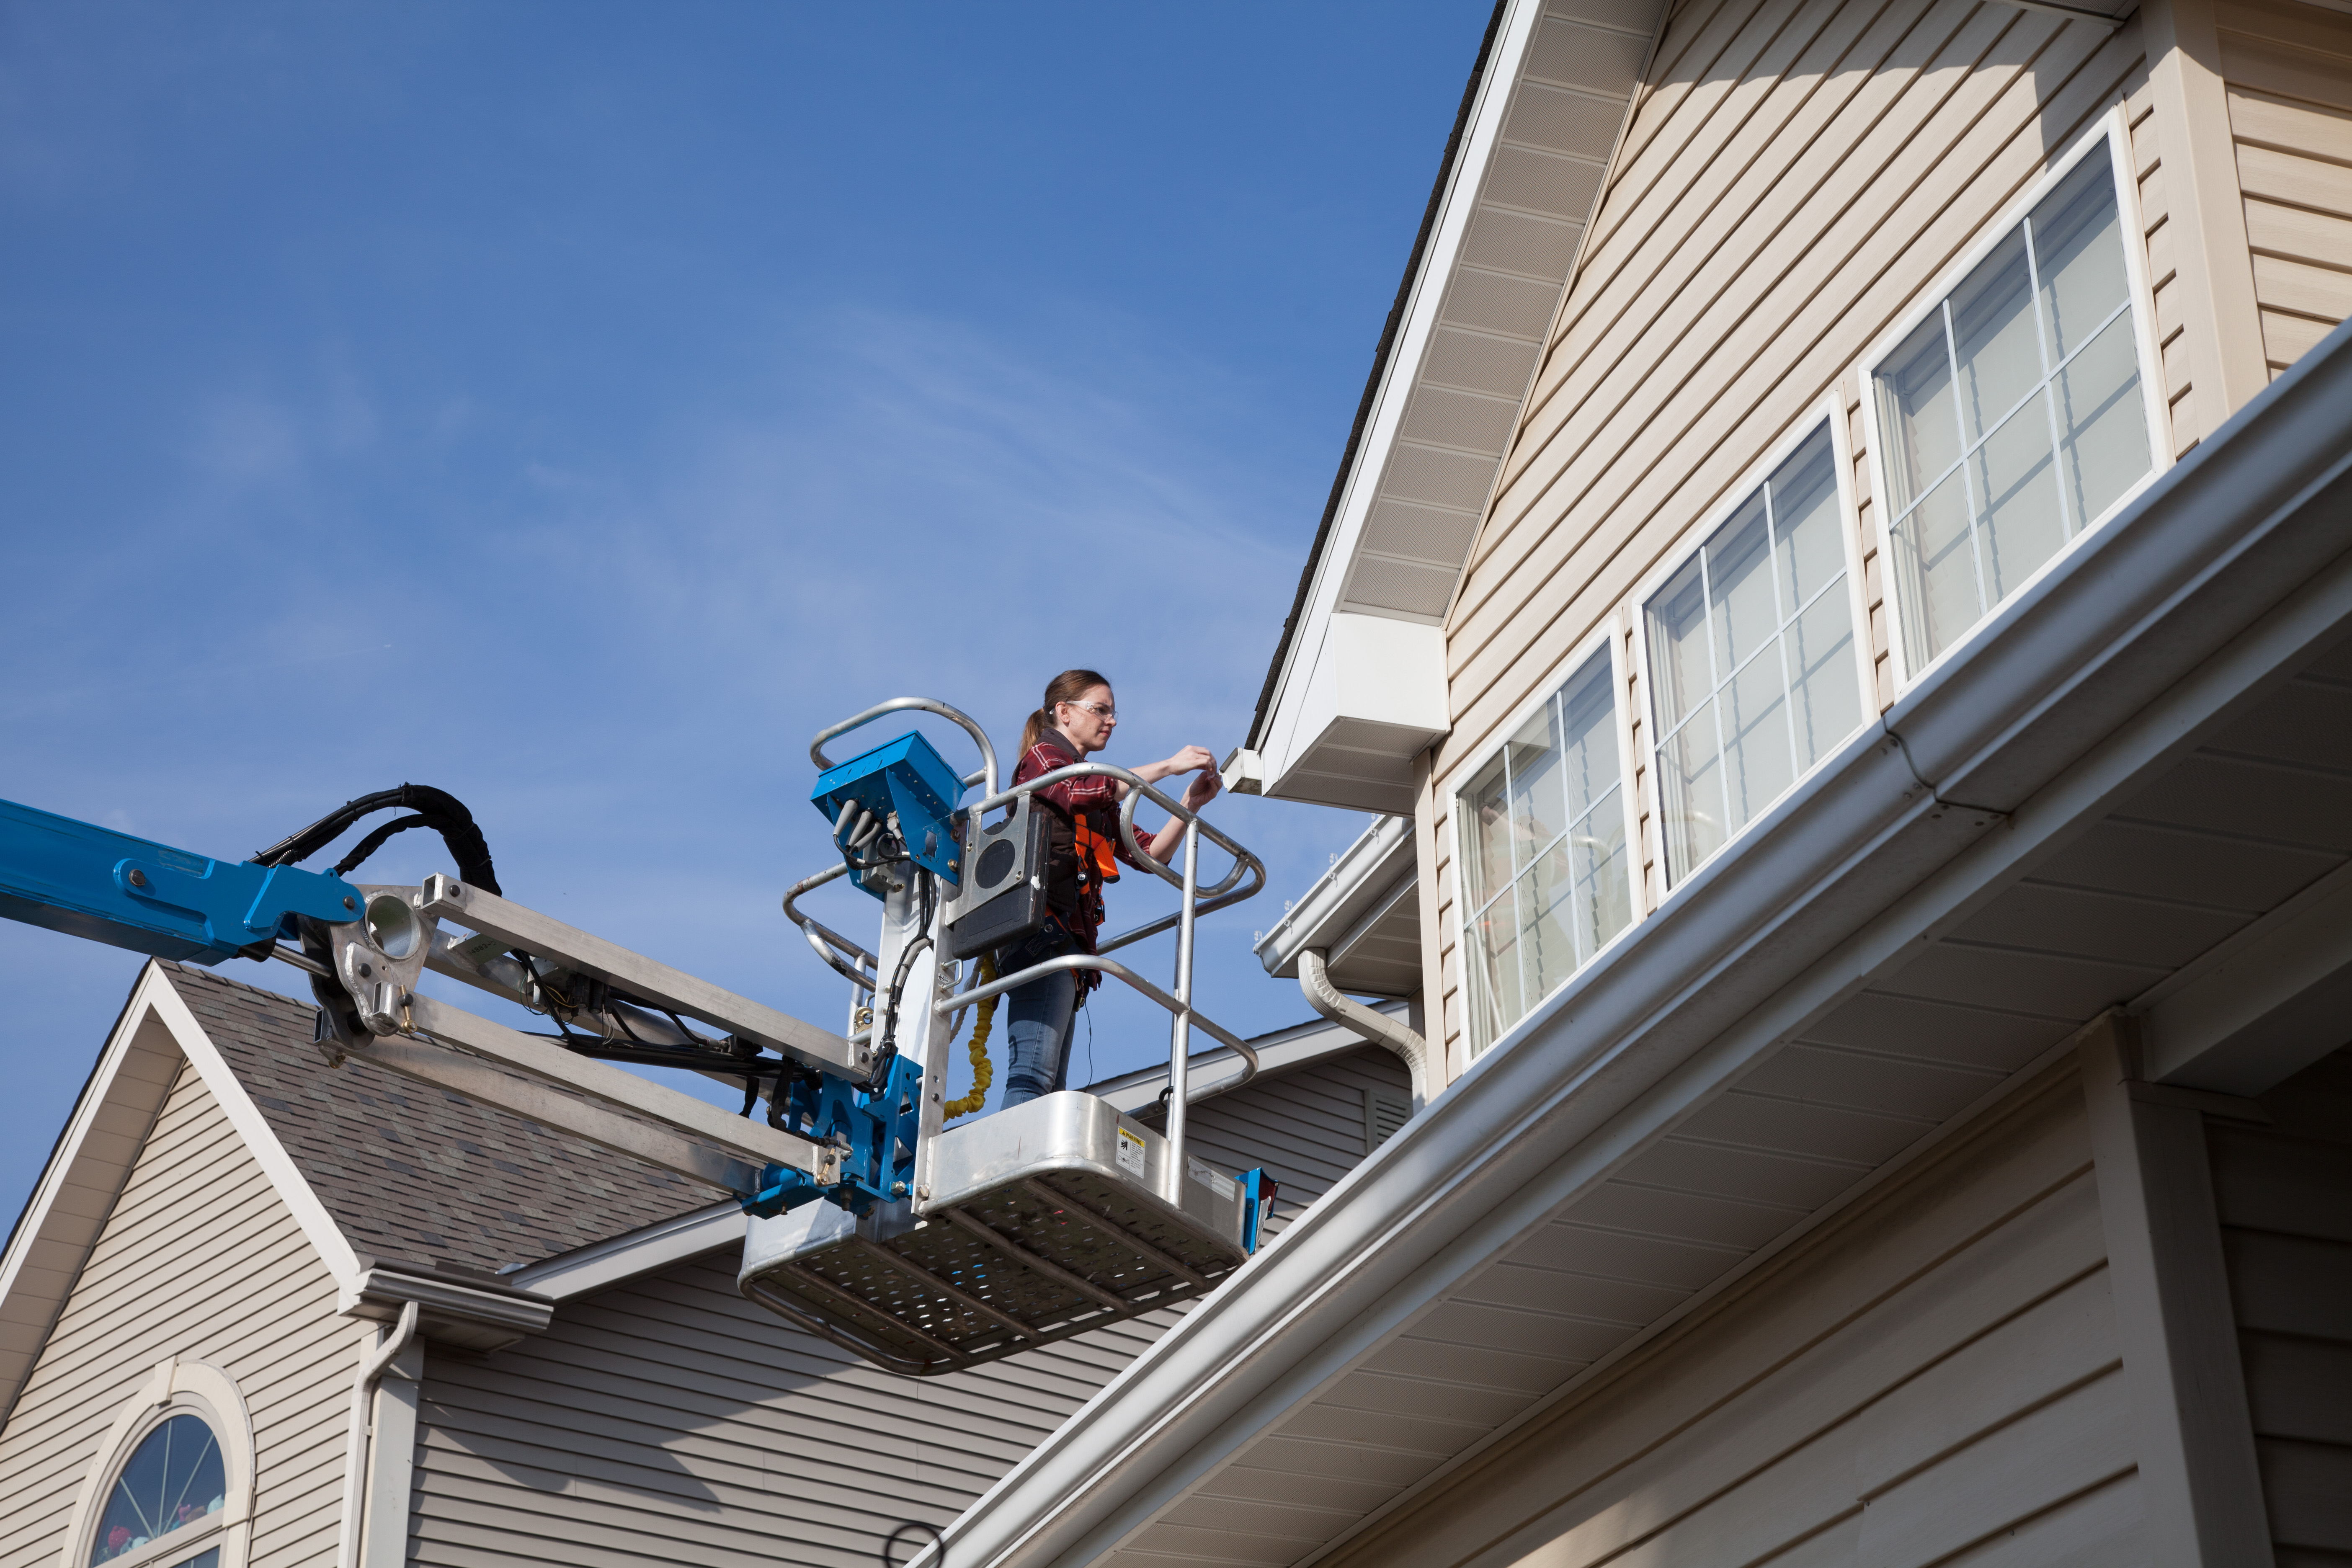 Take Down Holiday Decorations Efficiently with Our Equipment